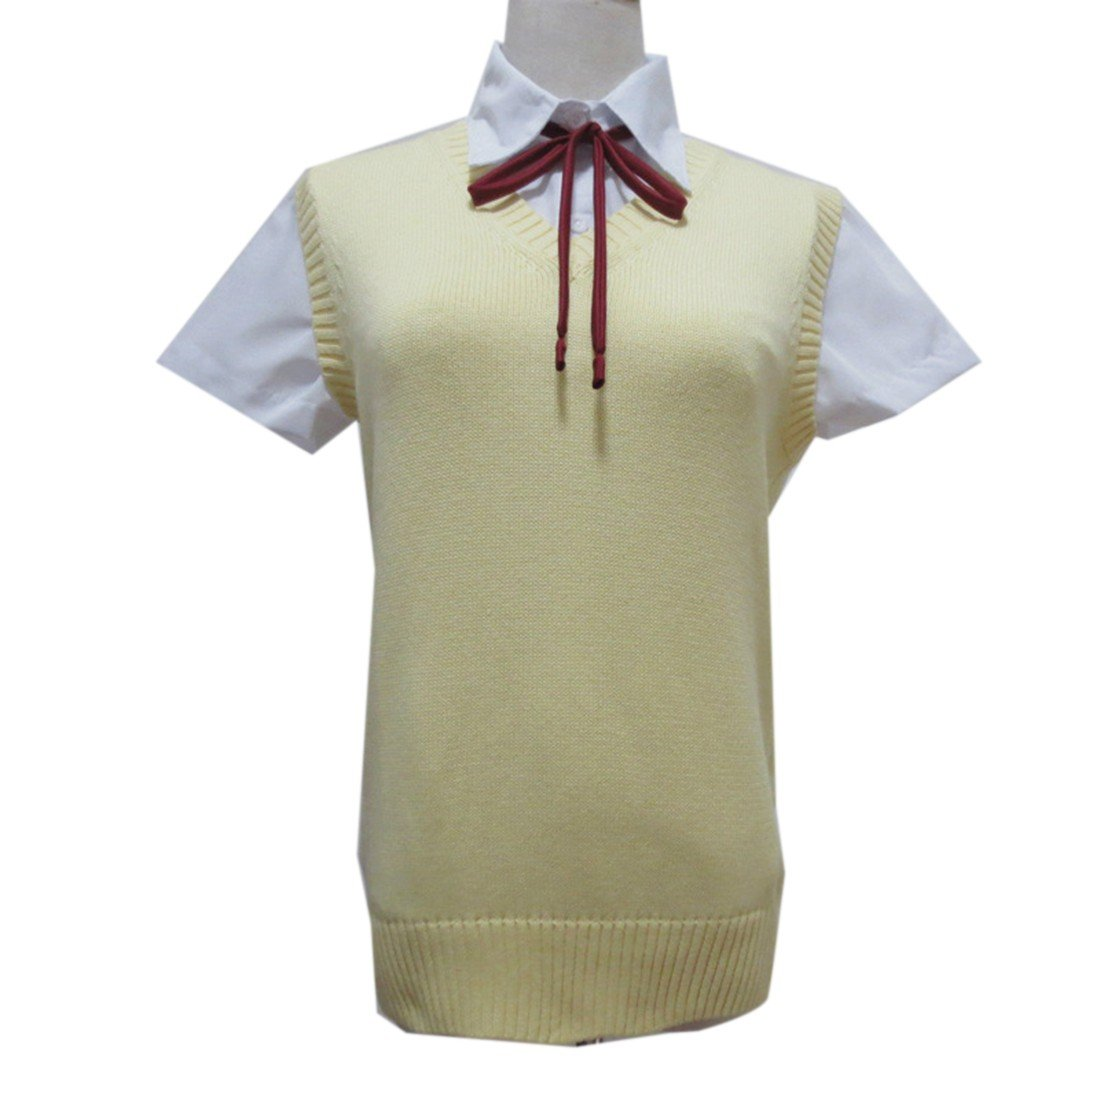 Women Sleeveless V Neck Cotton Knotting Tops School Girls JK Uniforms Vests Chemises QIYUN.Z 3018S0377/CA1